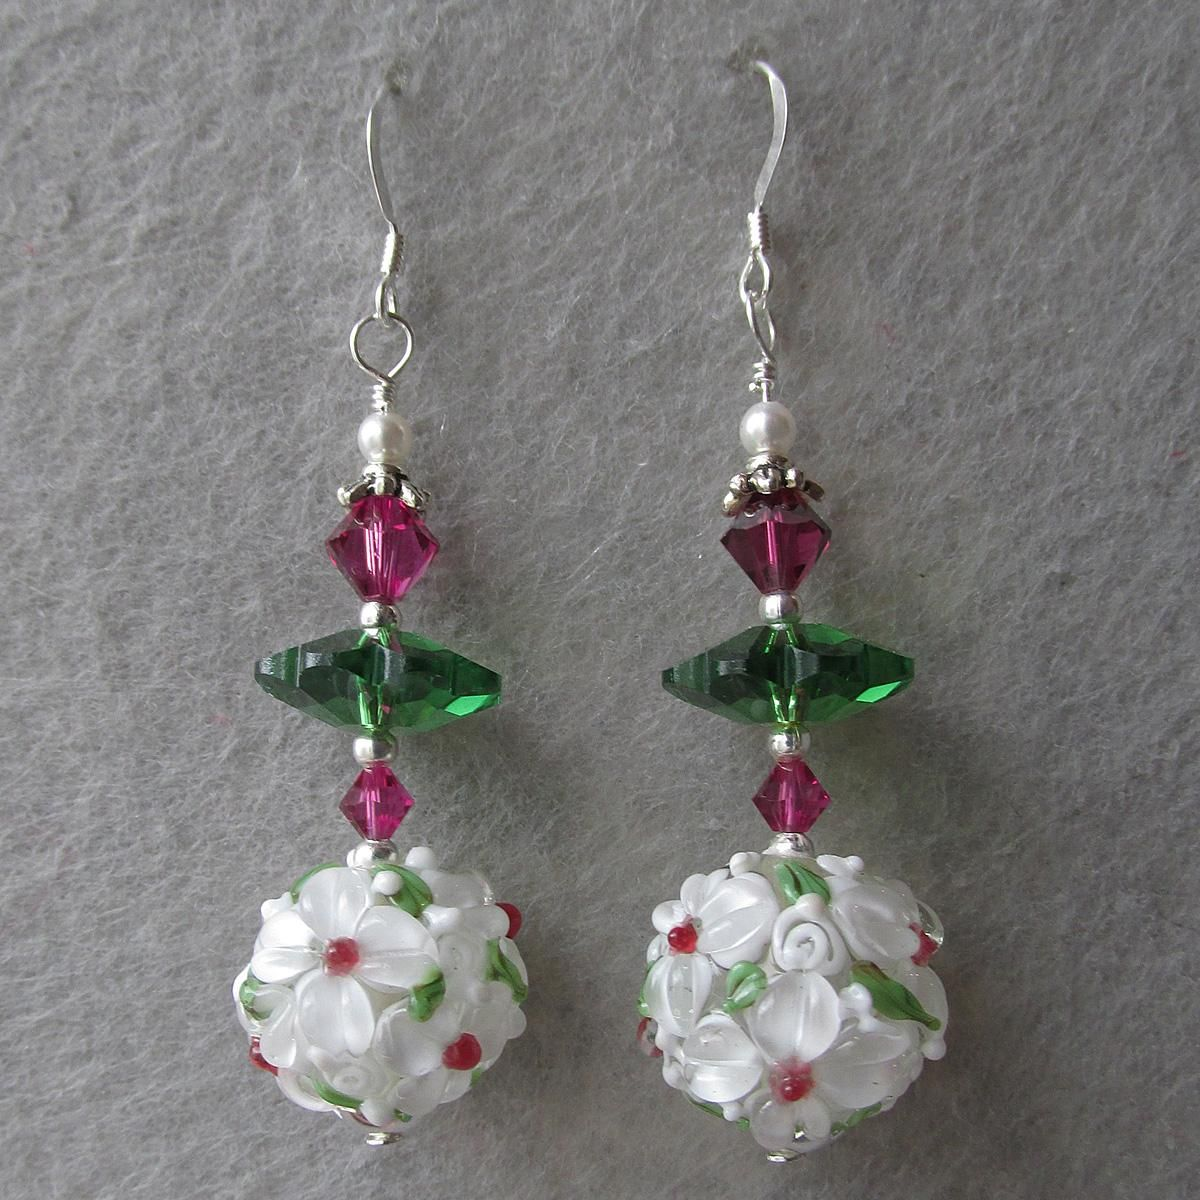 """My Secret Garden"" Lampwork Art Glass Artisan Earrings, ""White Dogwood Margarita"" #67"